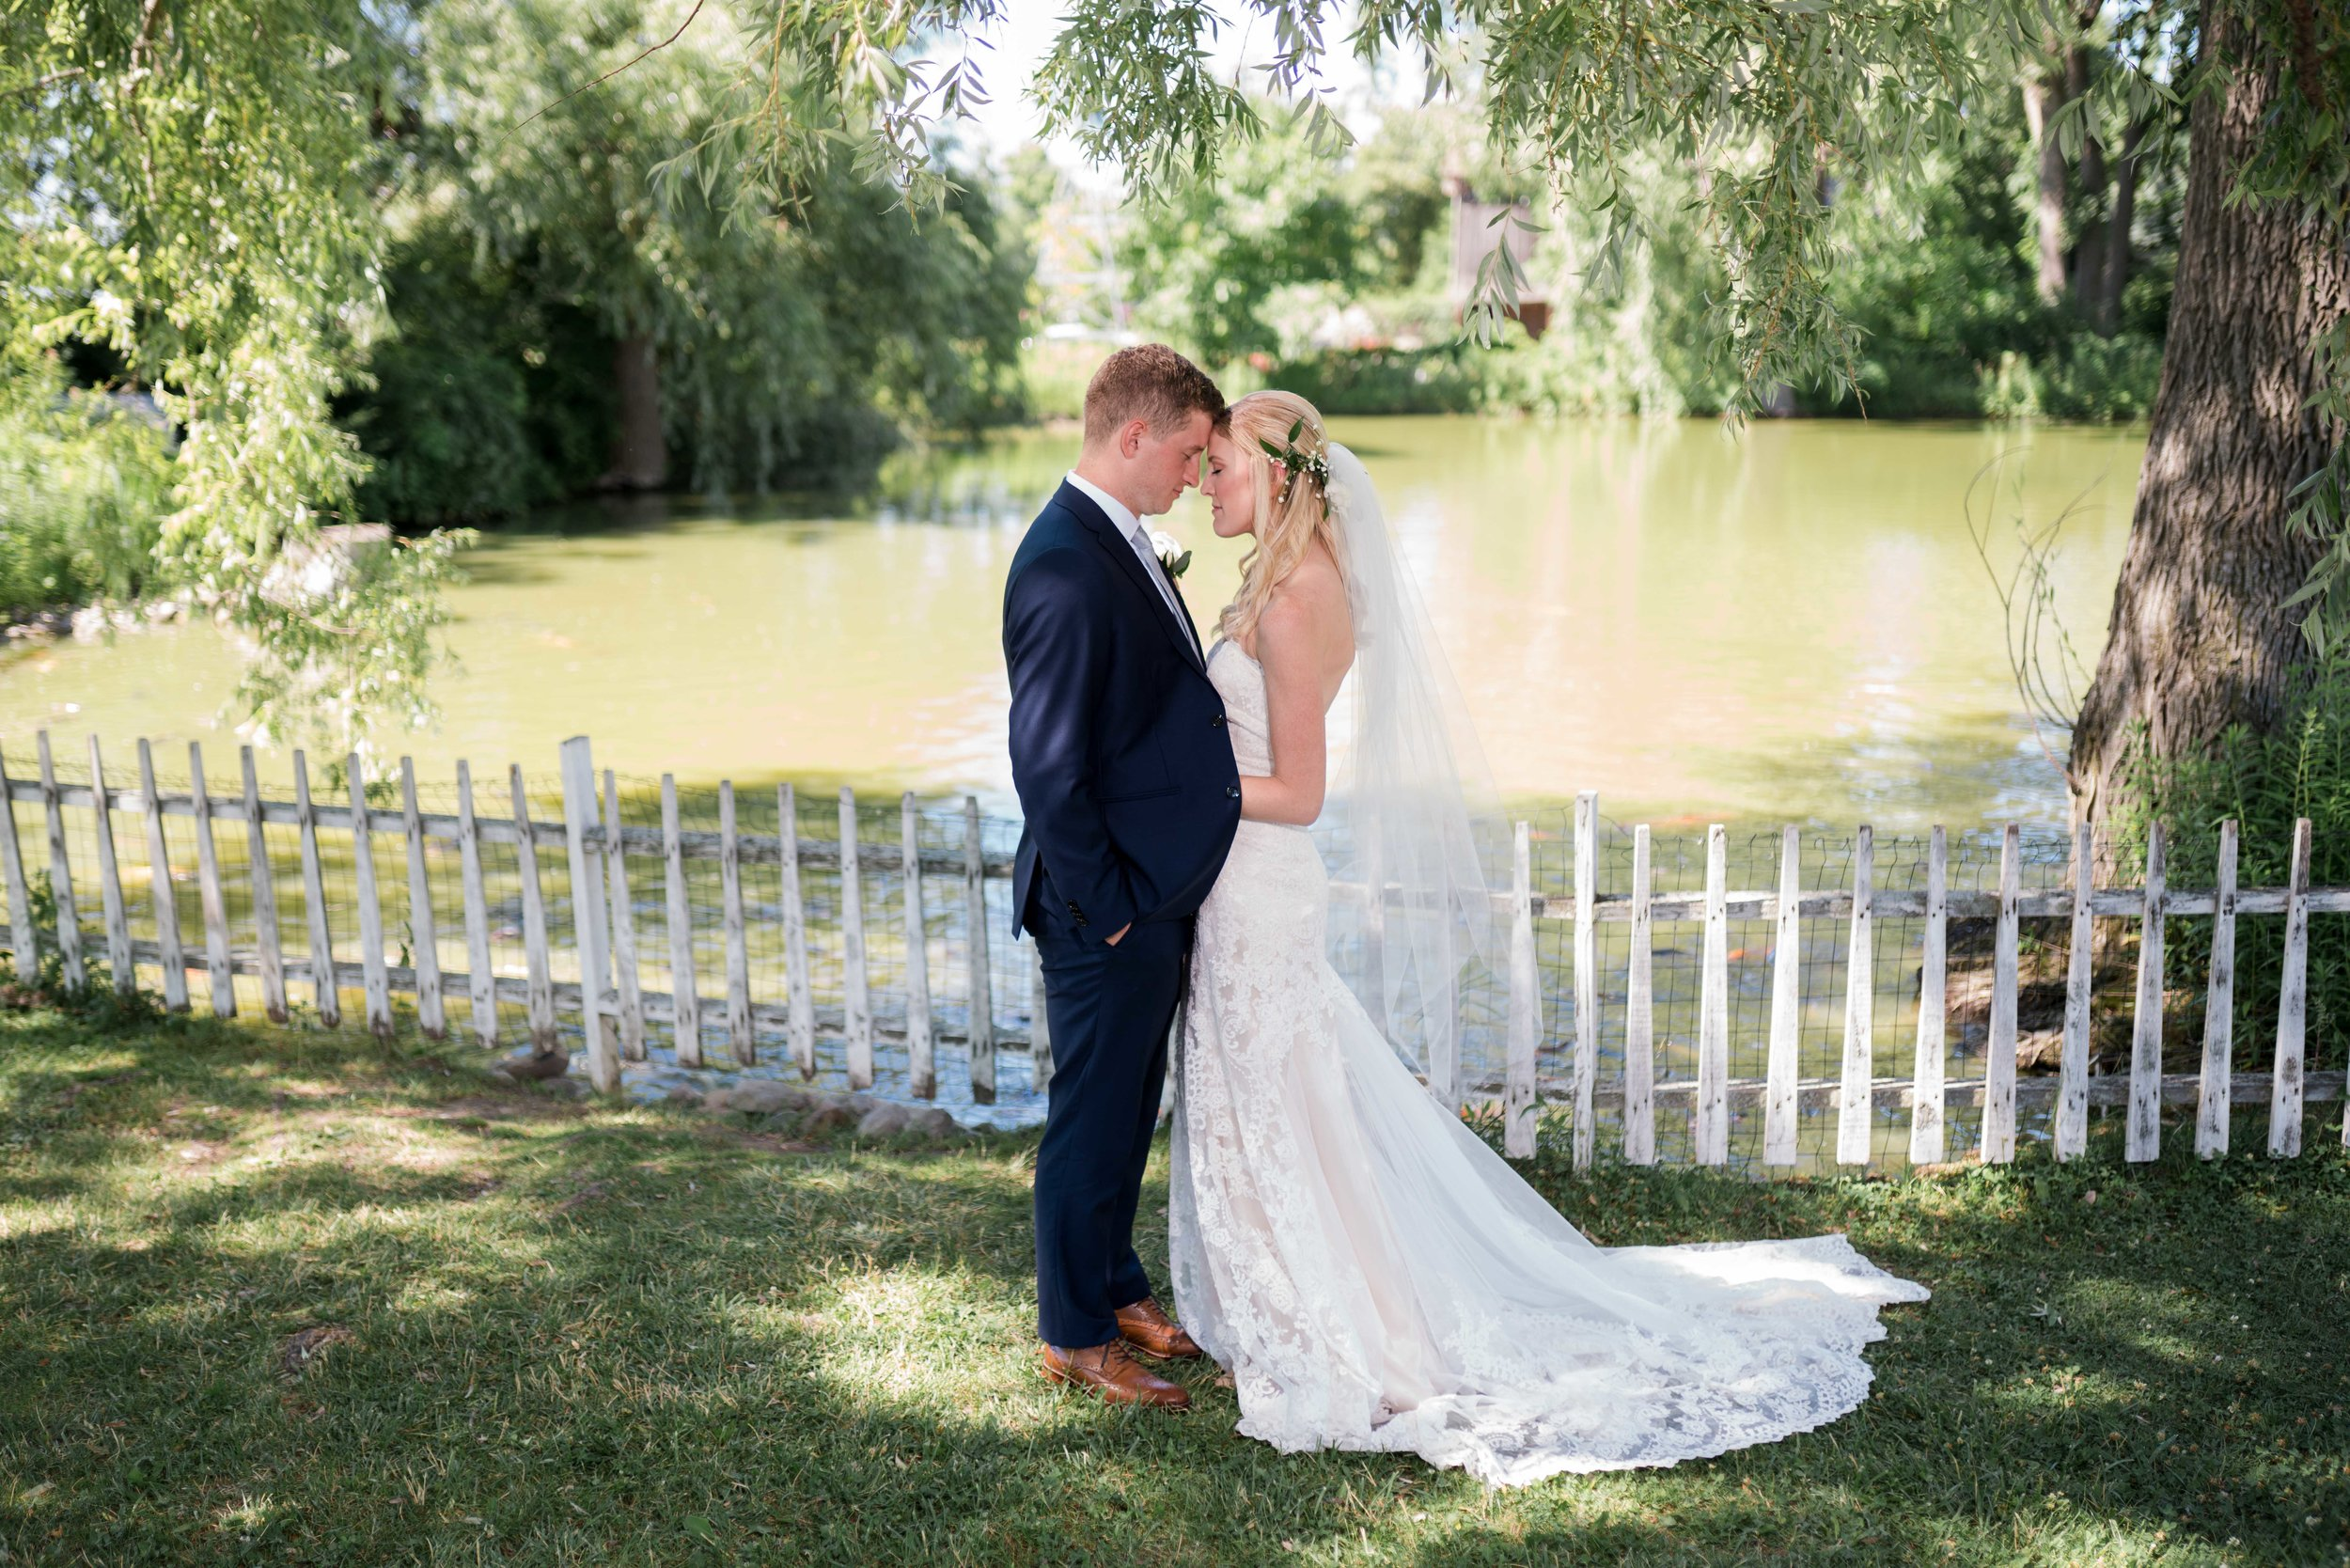 Wedding Photography at Wagner Vineyards Ginny Lee Cafe Finger Lakes by Stefan Ludwig Photography-34.jpg